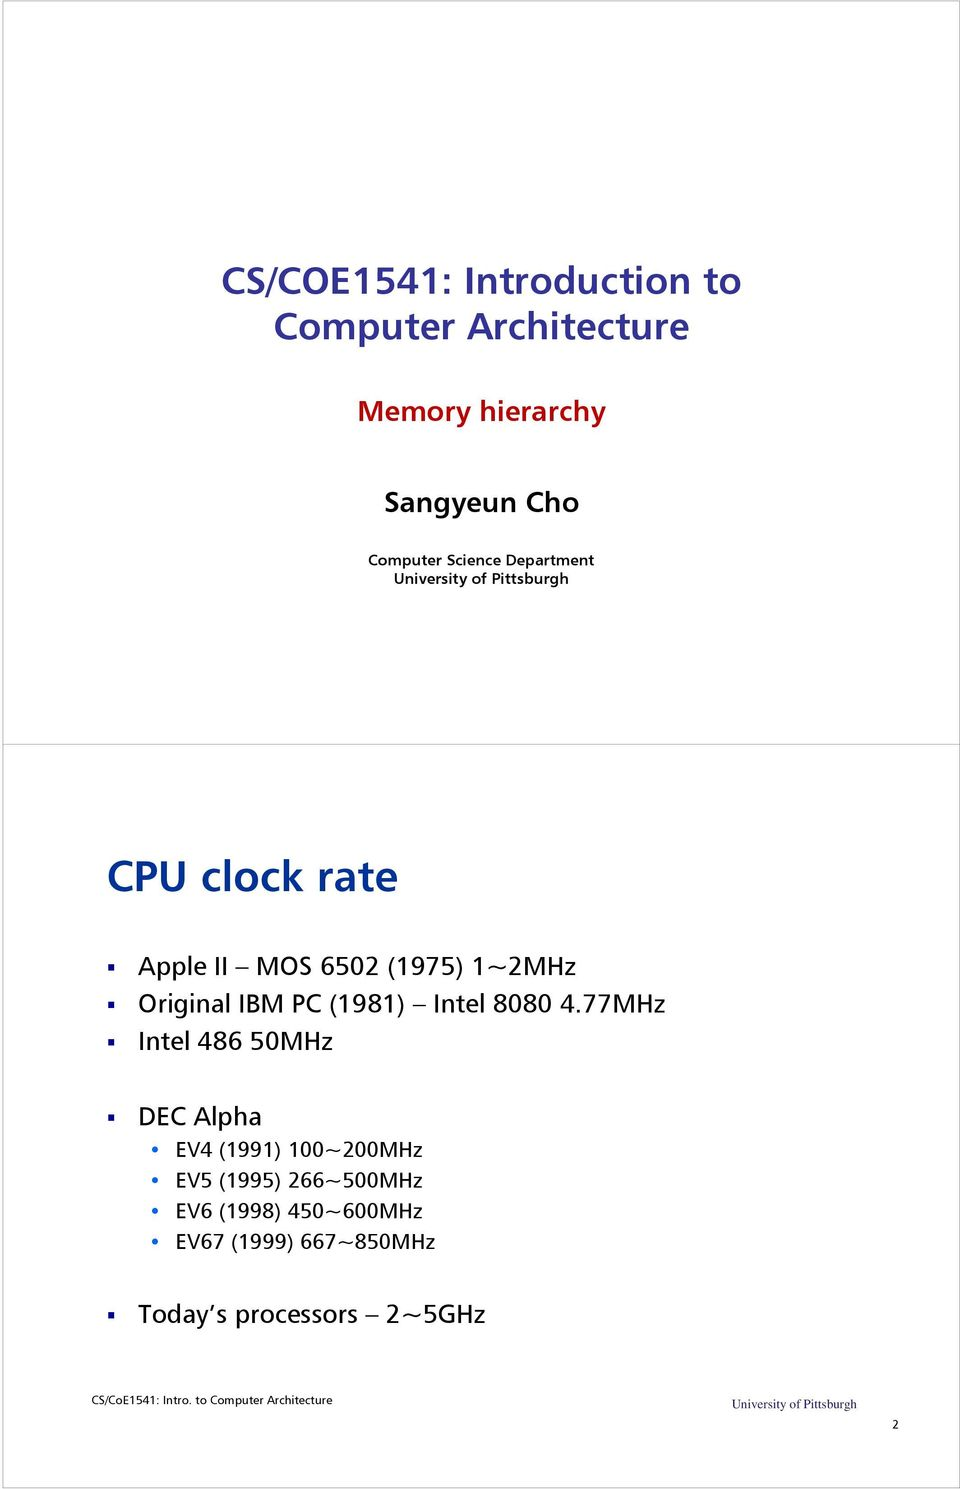 CS/COE1541: Introduction to Computer Architecture  Memory hierarchy